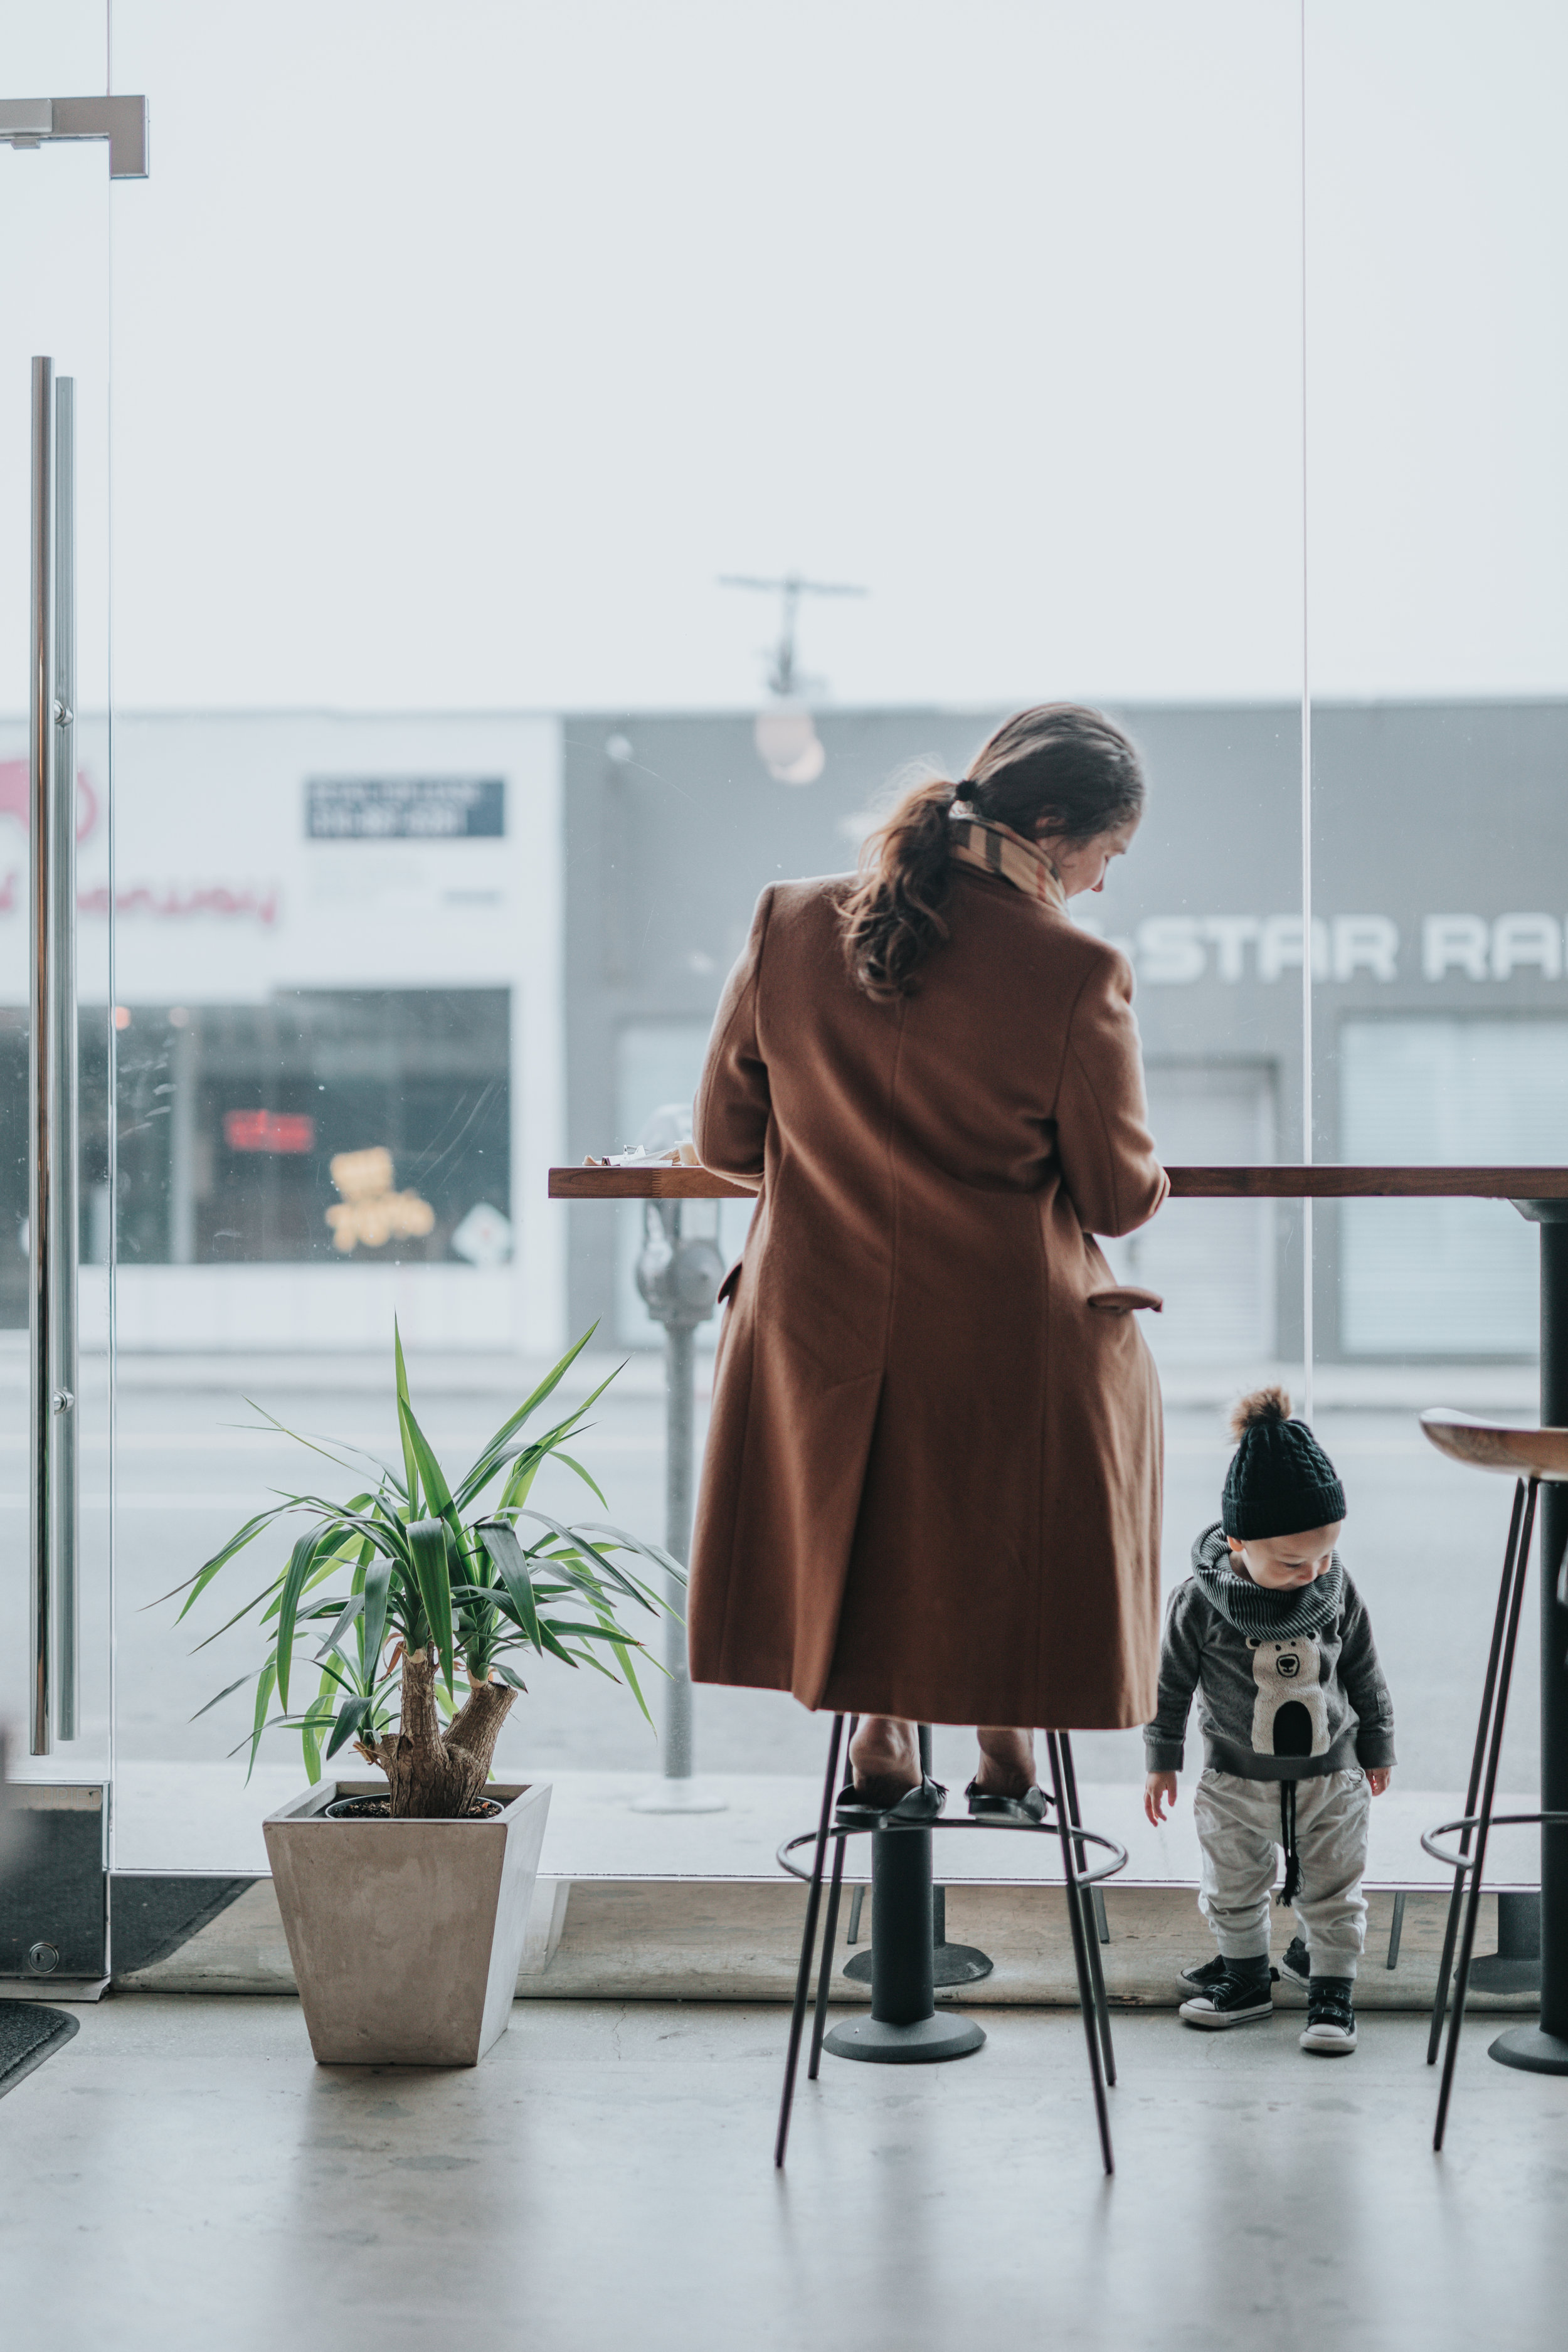 Woman and Toddler in coffee shop